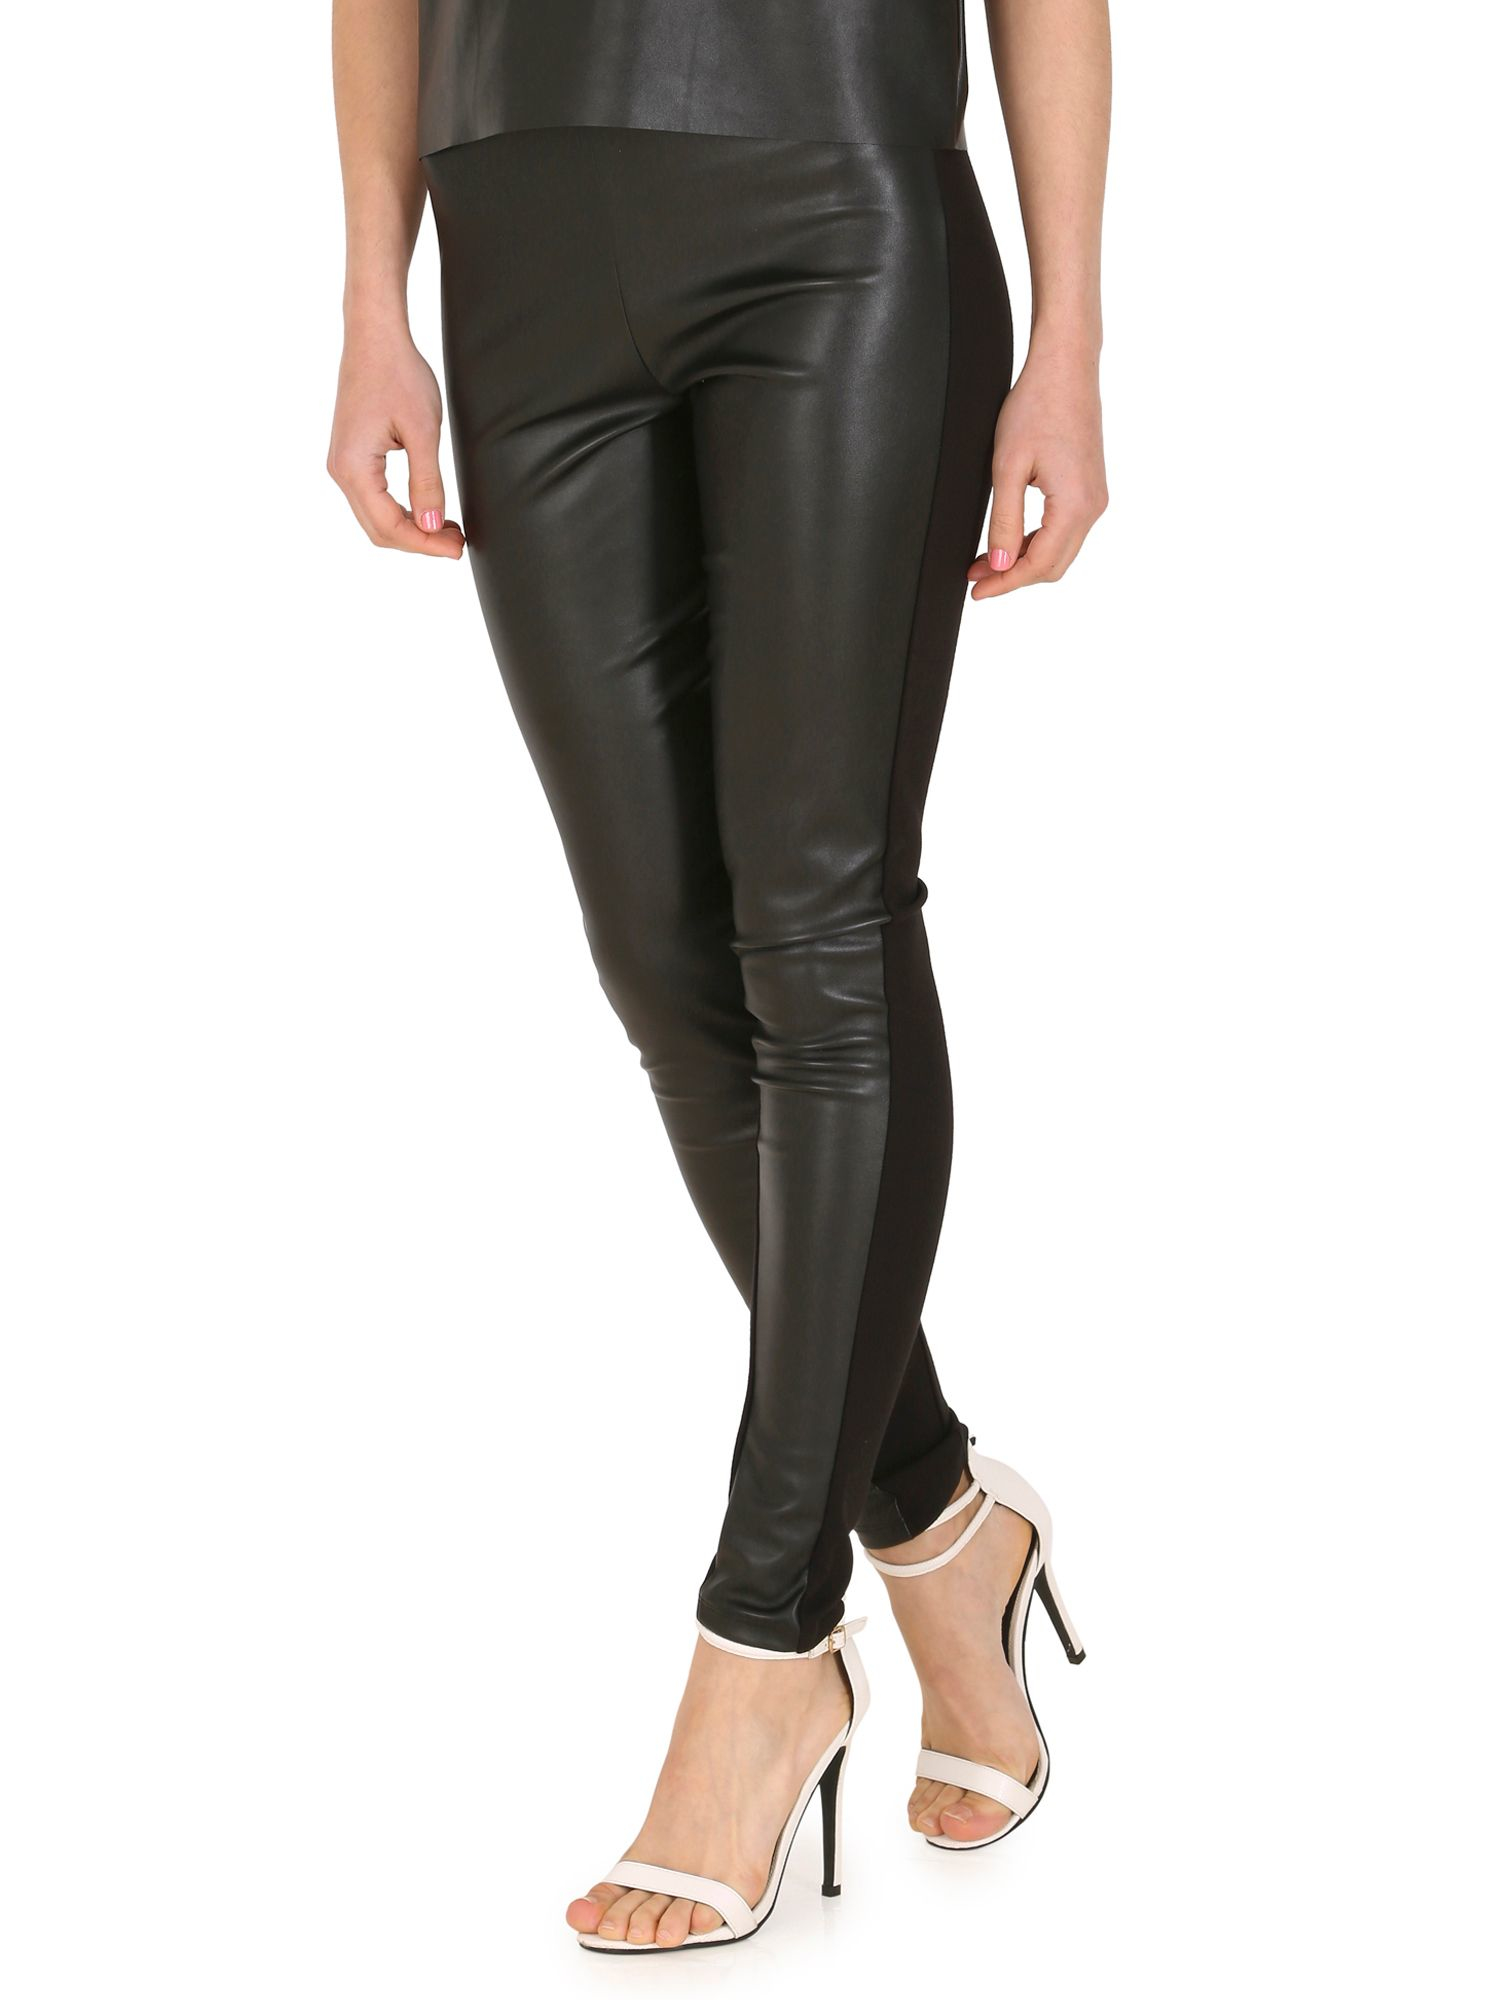 Plus Size Leggings Achieve style and comfort when you shop Plus Size Leggings at Forever Choose from striped knit leggings, faux leather leggings, sexy mesh-panel leggings & more.